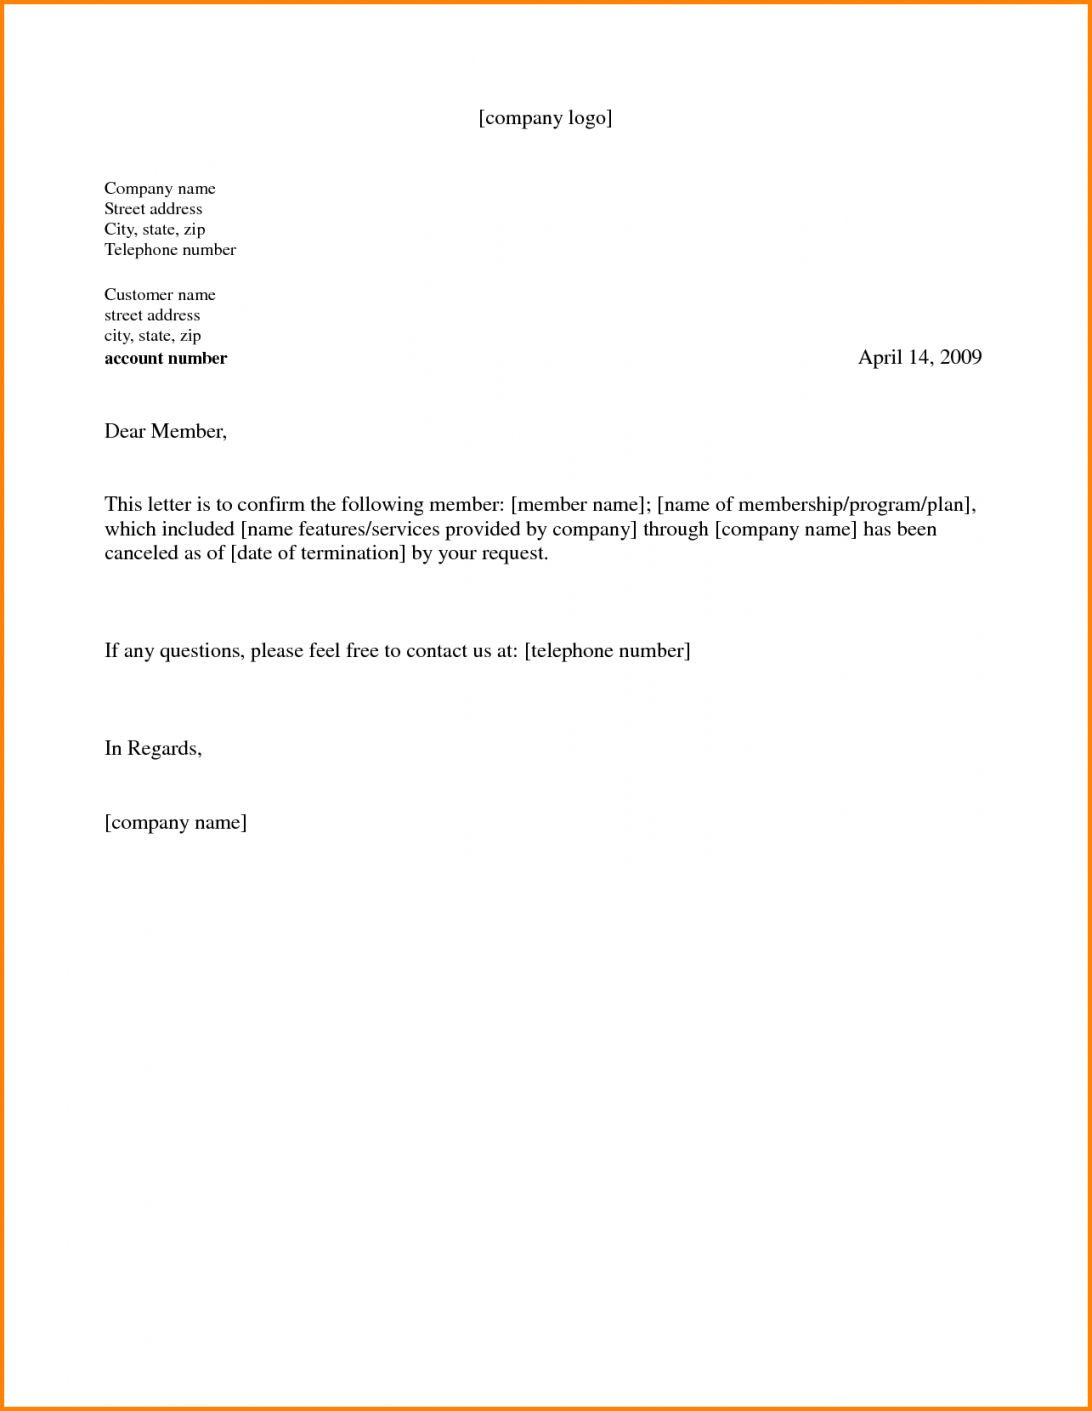 Gym Membership Cancellation Letter Examples : membership, cancellation, letter, examples, Image, Membership, Cancellation, Letter, Template, Templates, Free,, Lettering,